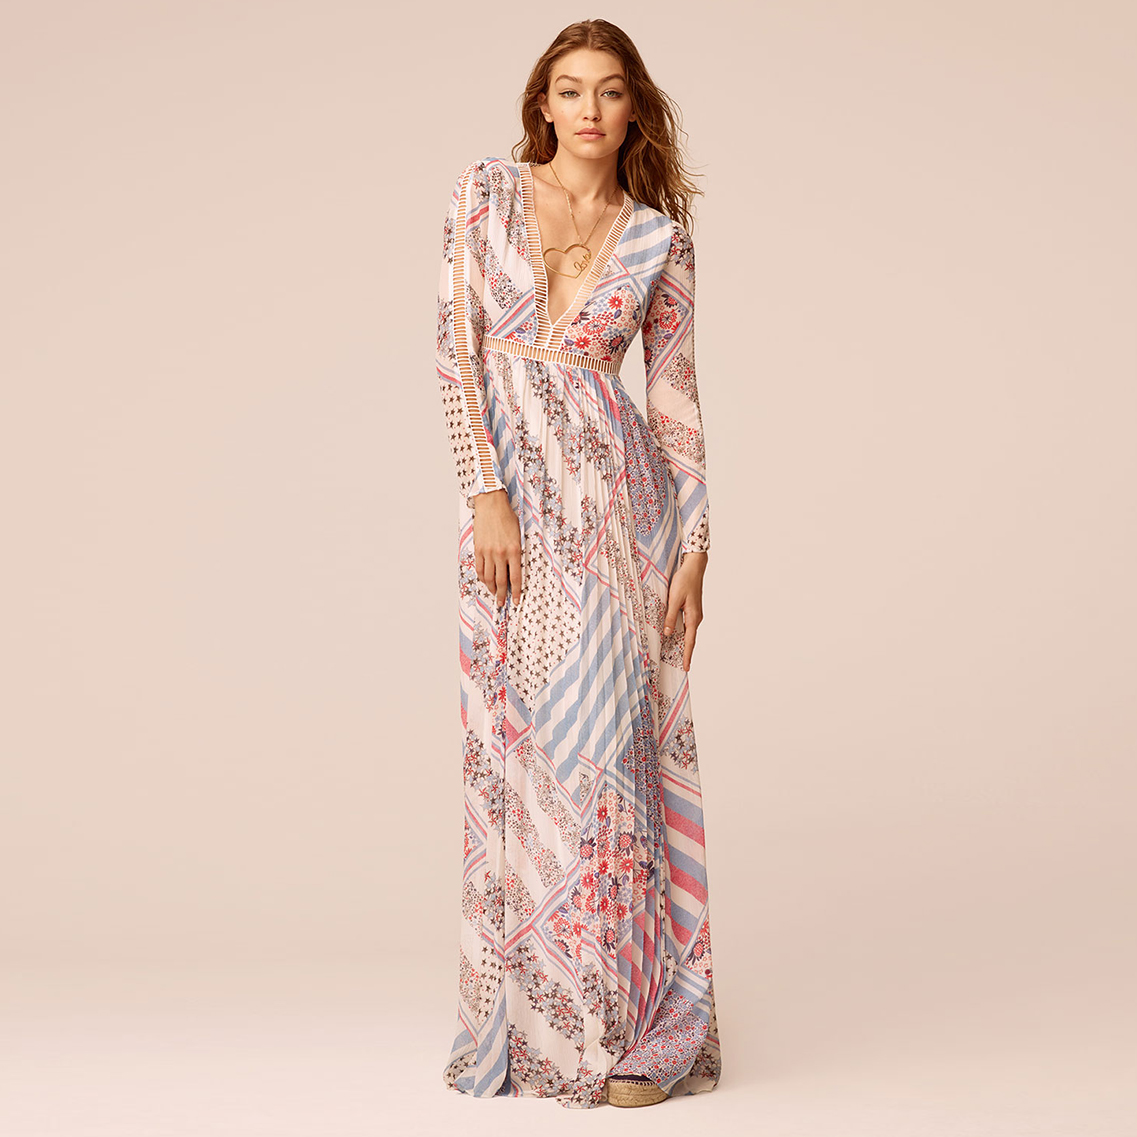 Pure Silk Printed Maxi Dress Gigi Hadid